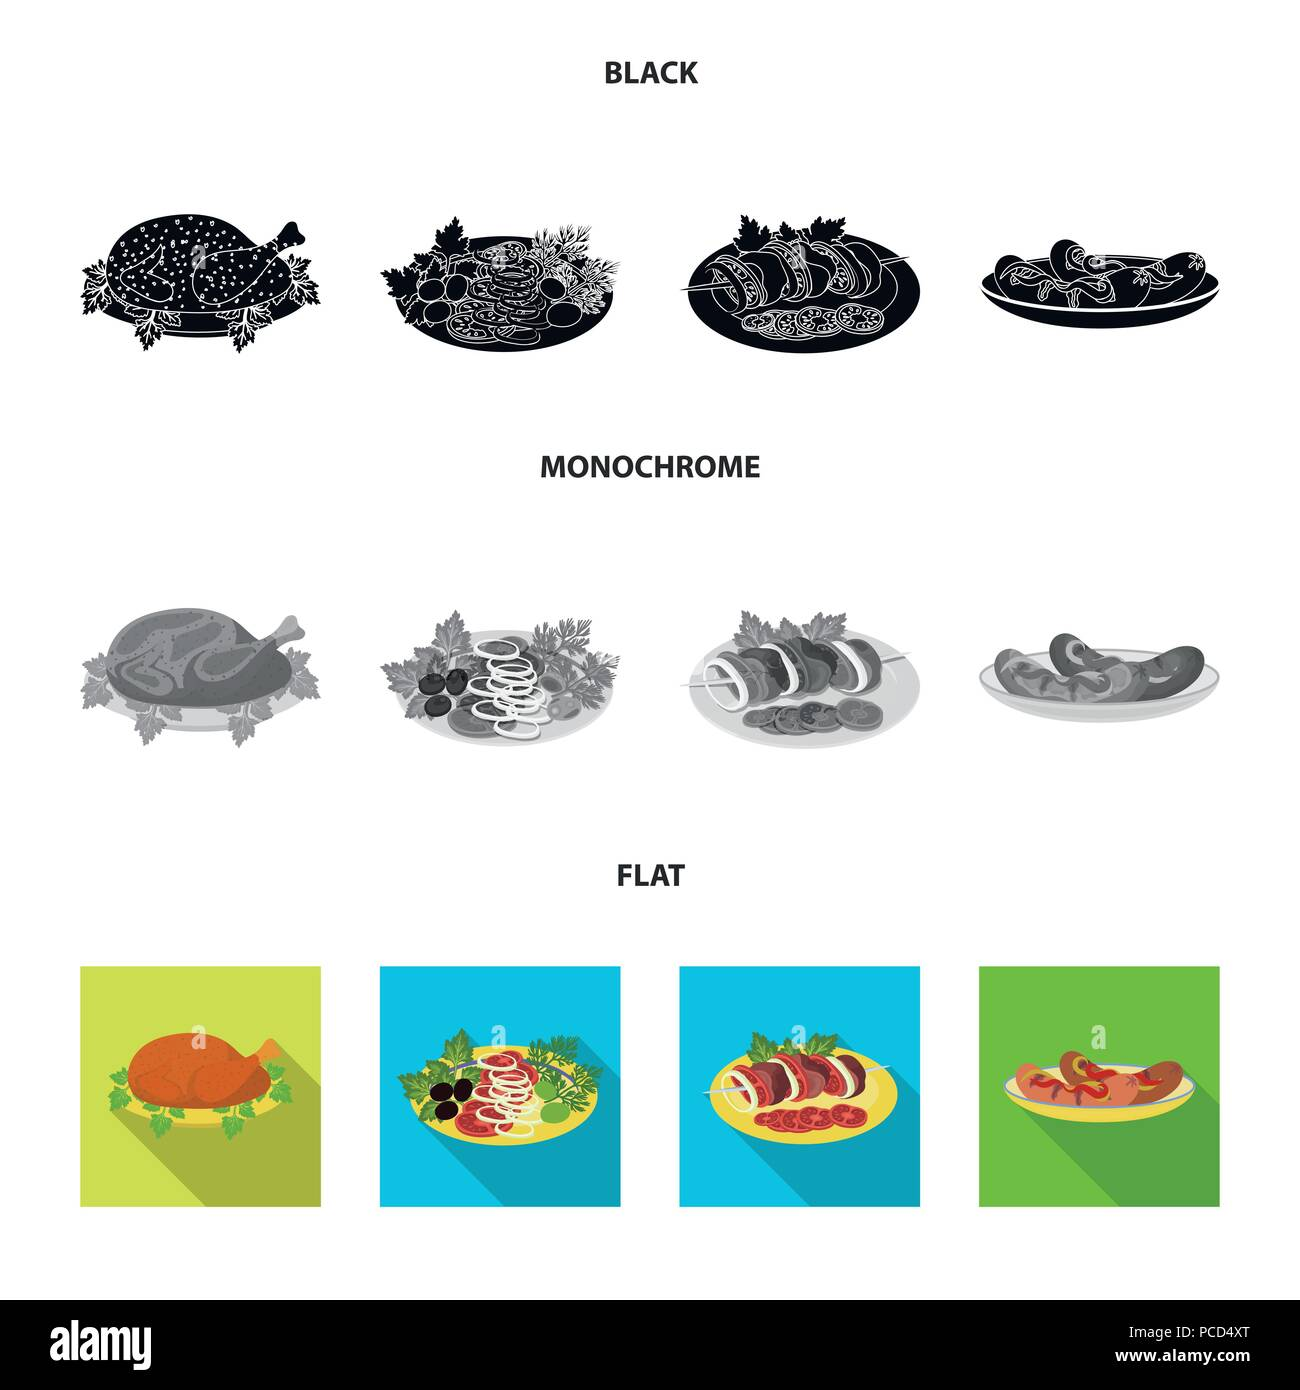 Fried chicken, vegetable salad, shish kebab with vegetables, fried sausages on a plate. Food and Cooking set collection icons in black, flat, monochro - Stock Image